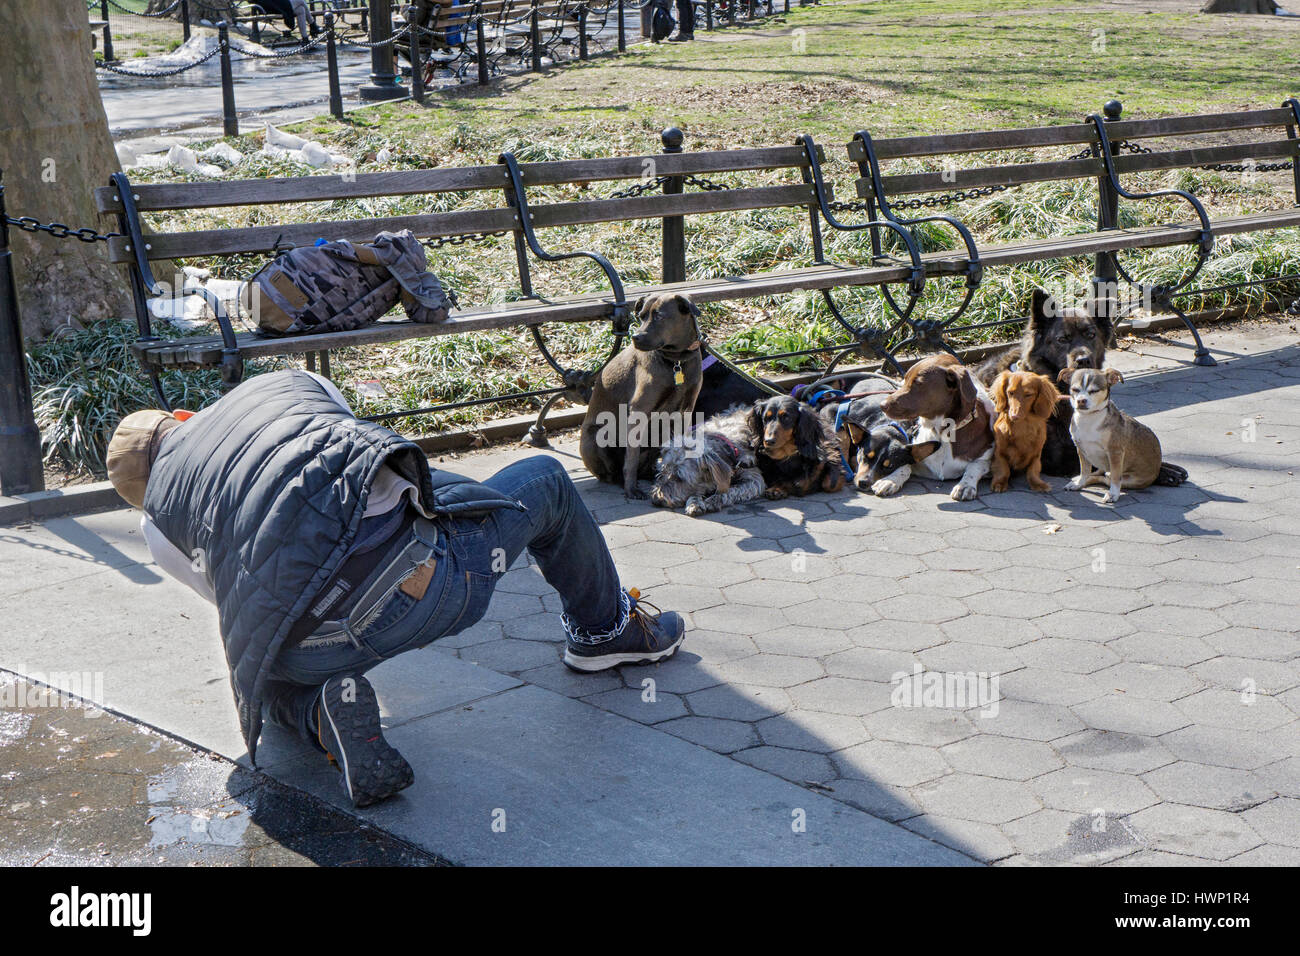 A dog walker and trainer poses 8 dogs for a group photo in Washington Square Park in Greenwich Village, New York - Stock Image